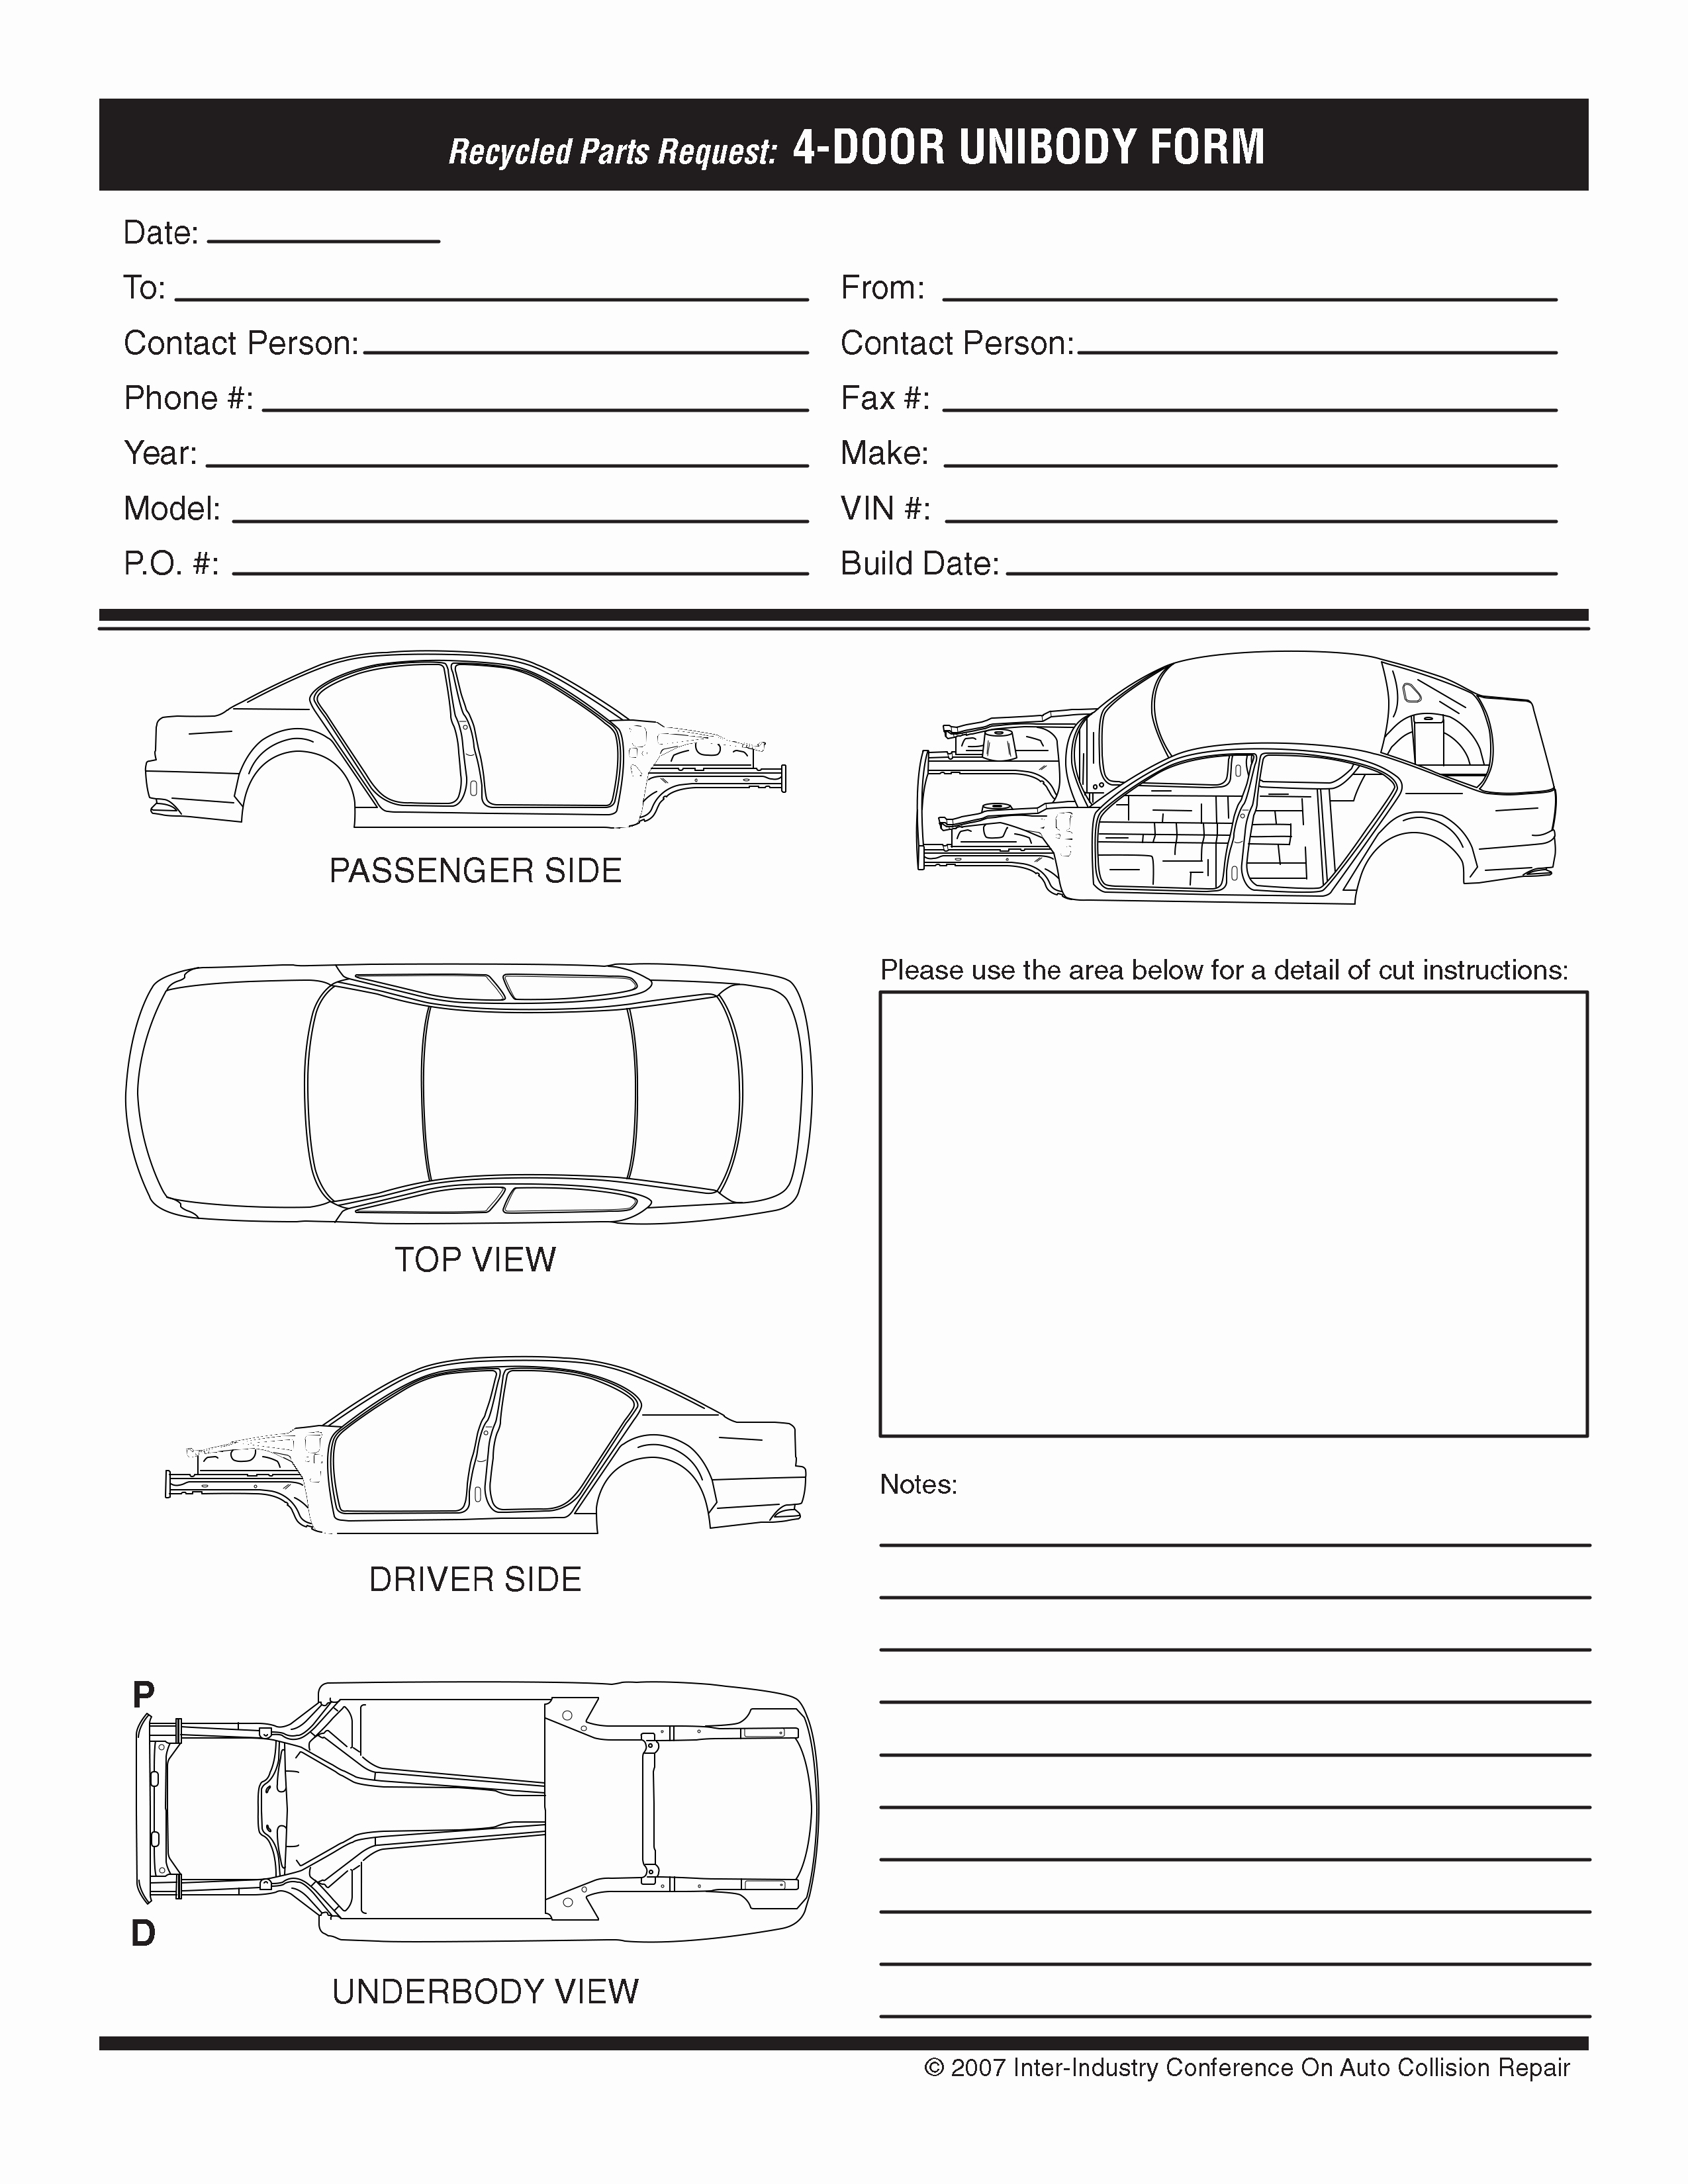 Auto Body Shop forms Luxury Vehicle Cut Sheets Baird S Auto Parts